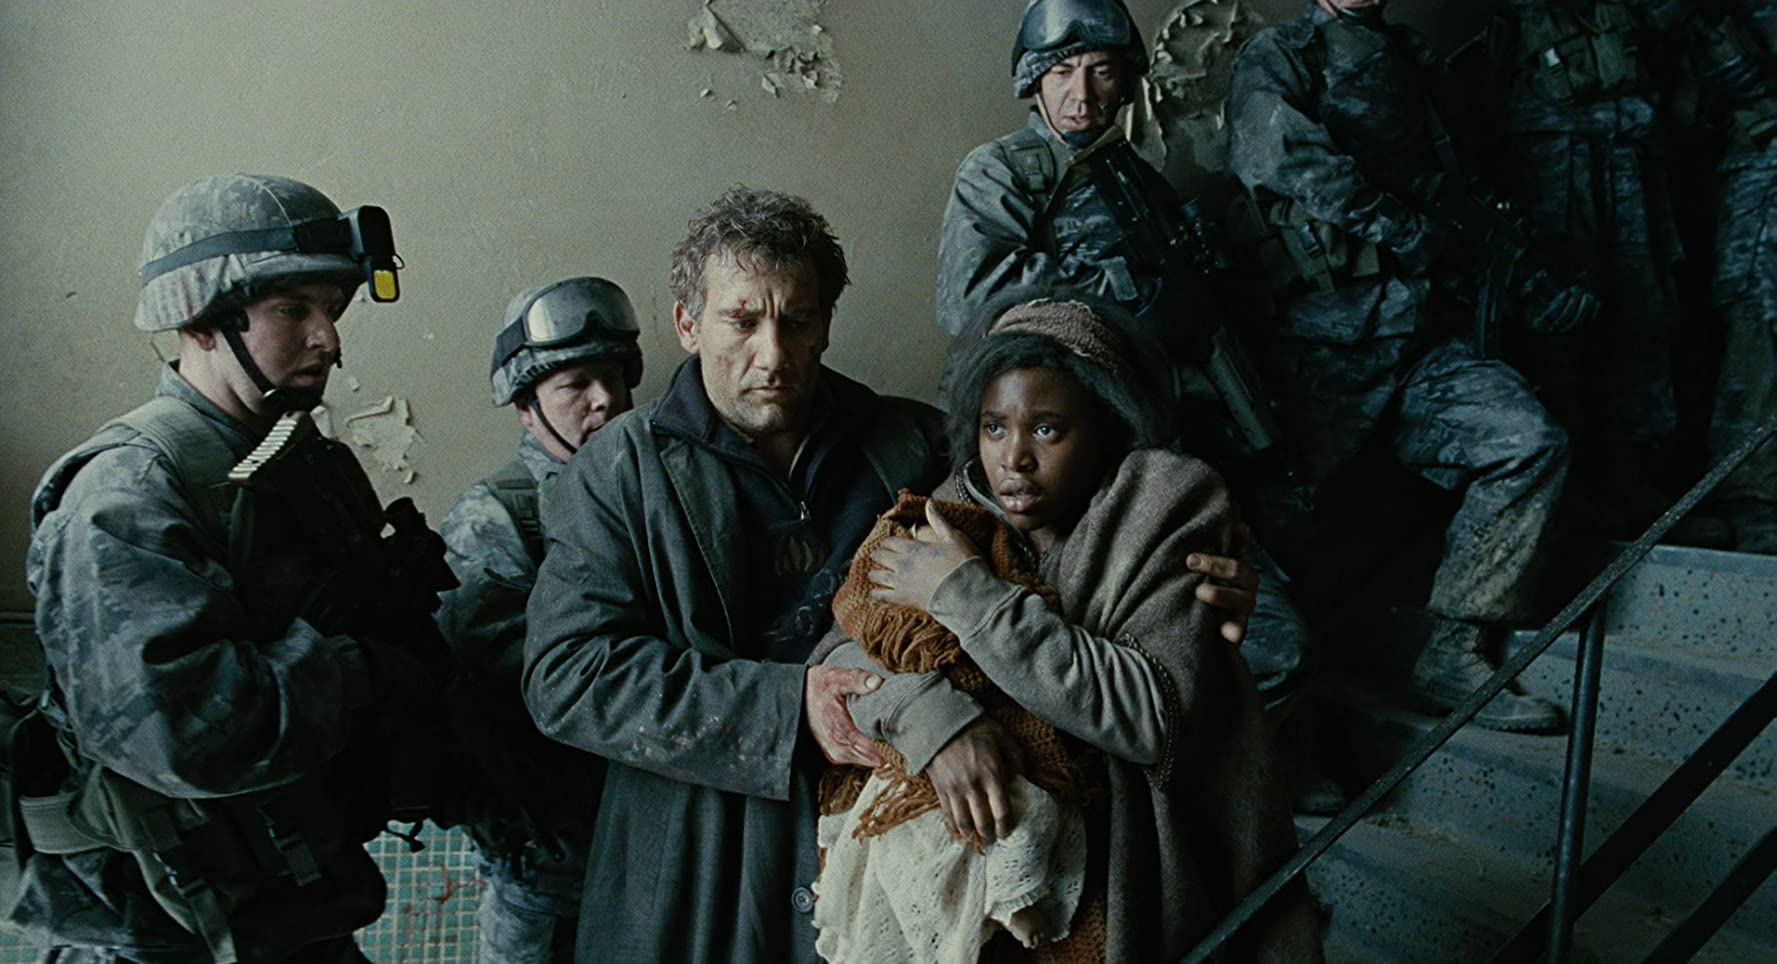 Clive Owen and Clare-Hope Ashitey in Children of Men (2006)